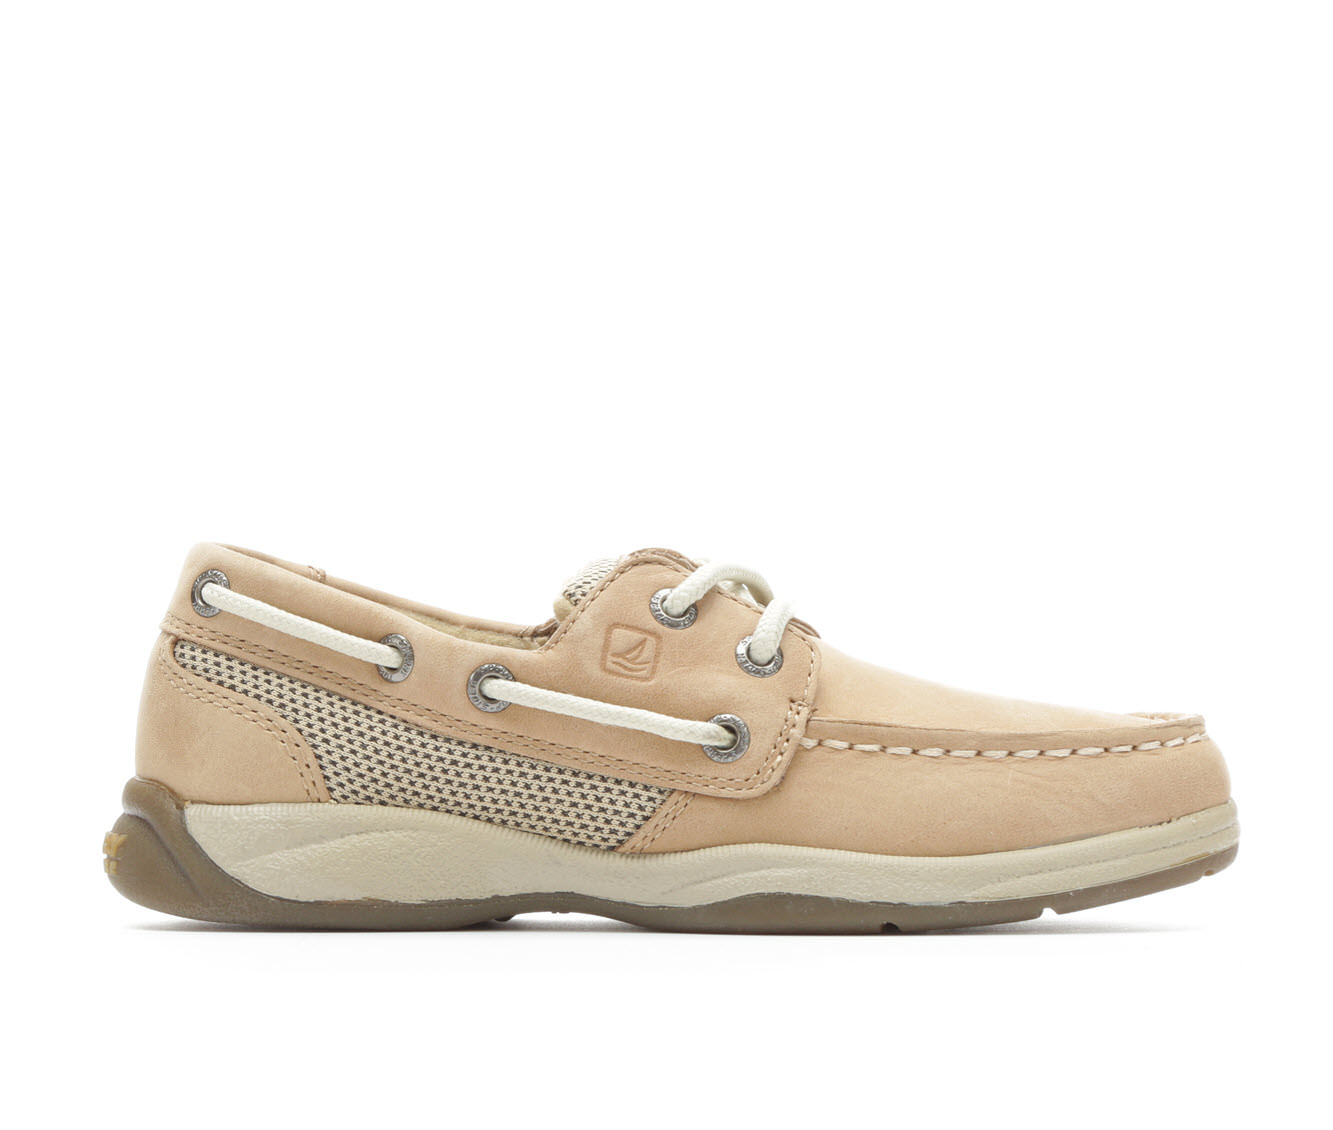 Girls' Sperry Intrepid Boat Shoes (Beige)